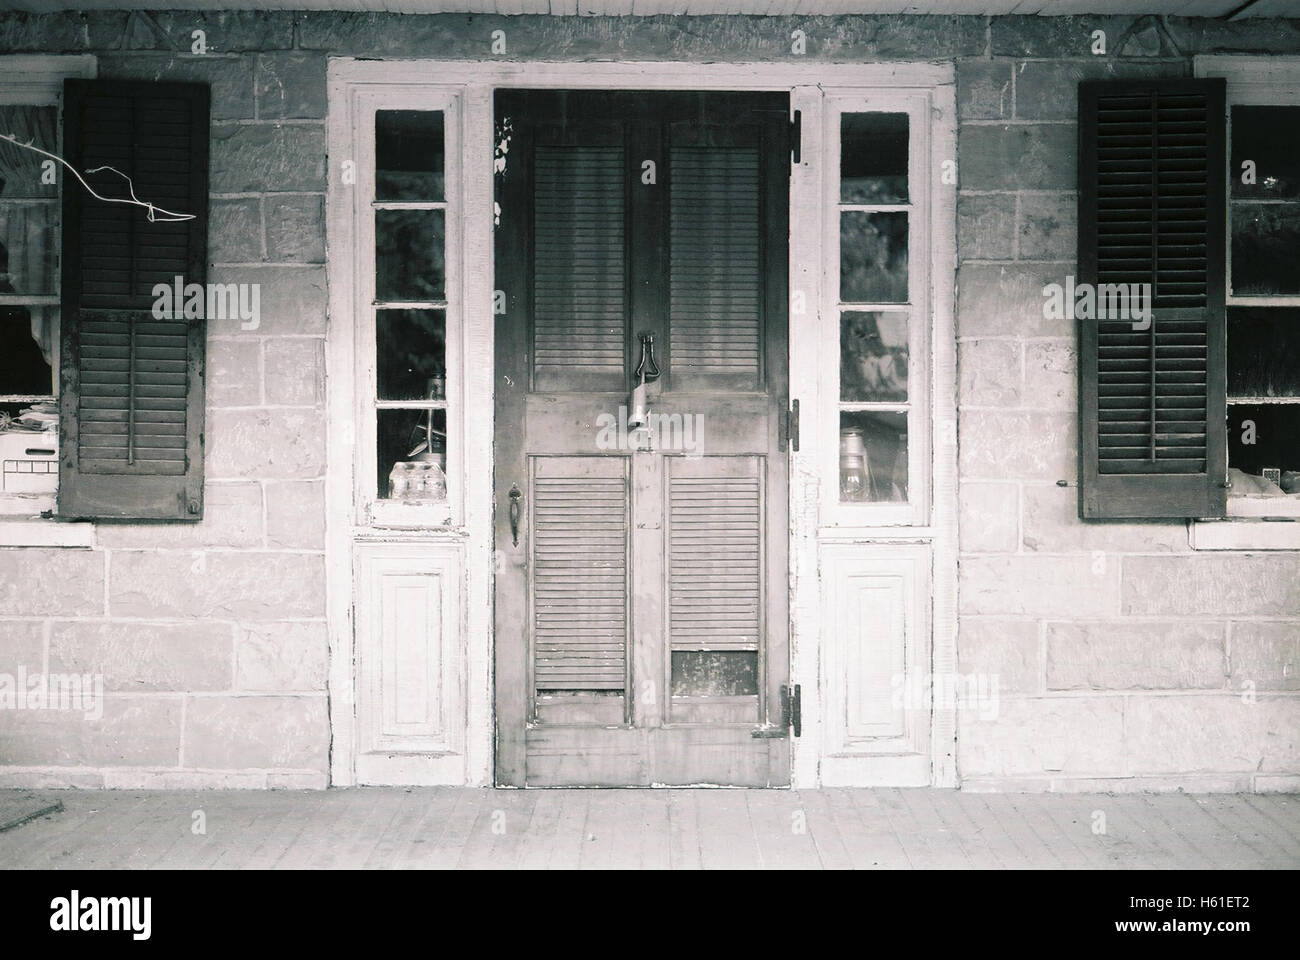 Abandoned colonial style house doorway and porch with creepy windows with wooden shutters in New Jersey USA shot Stock Photo